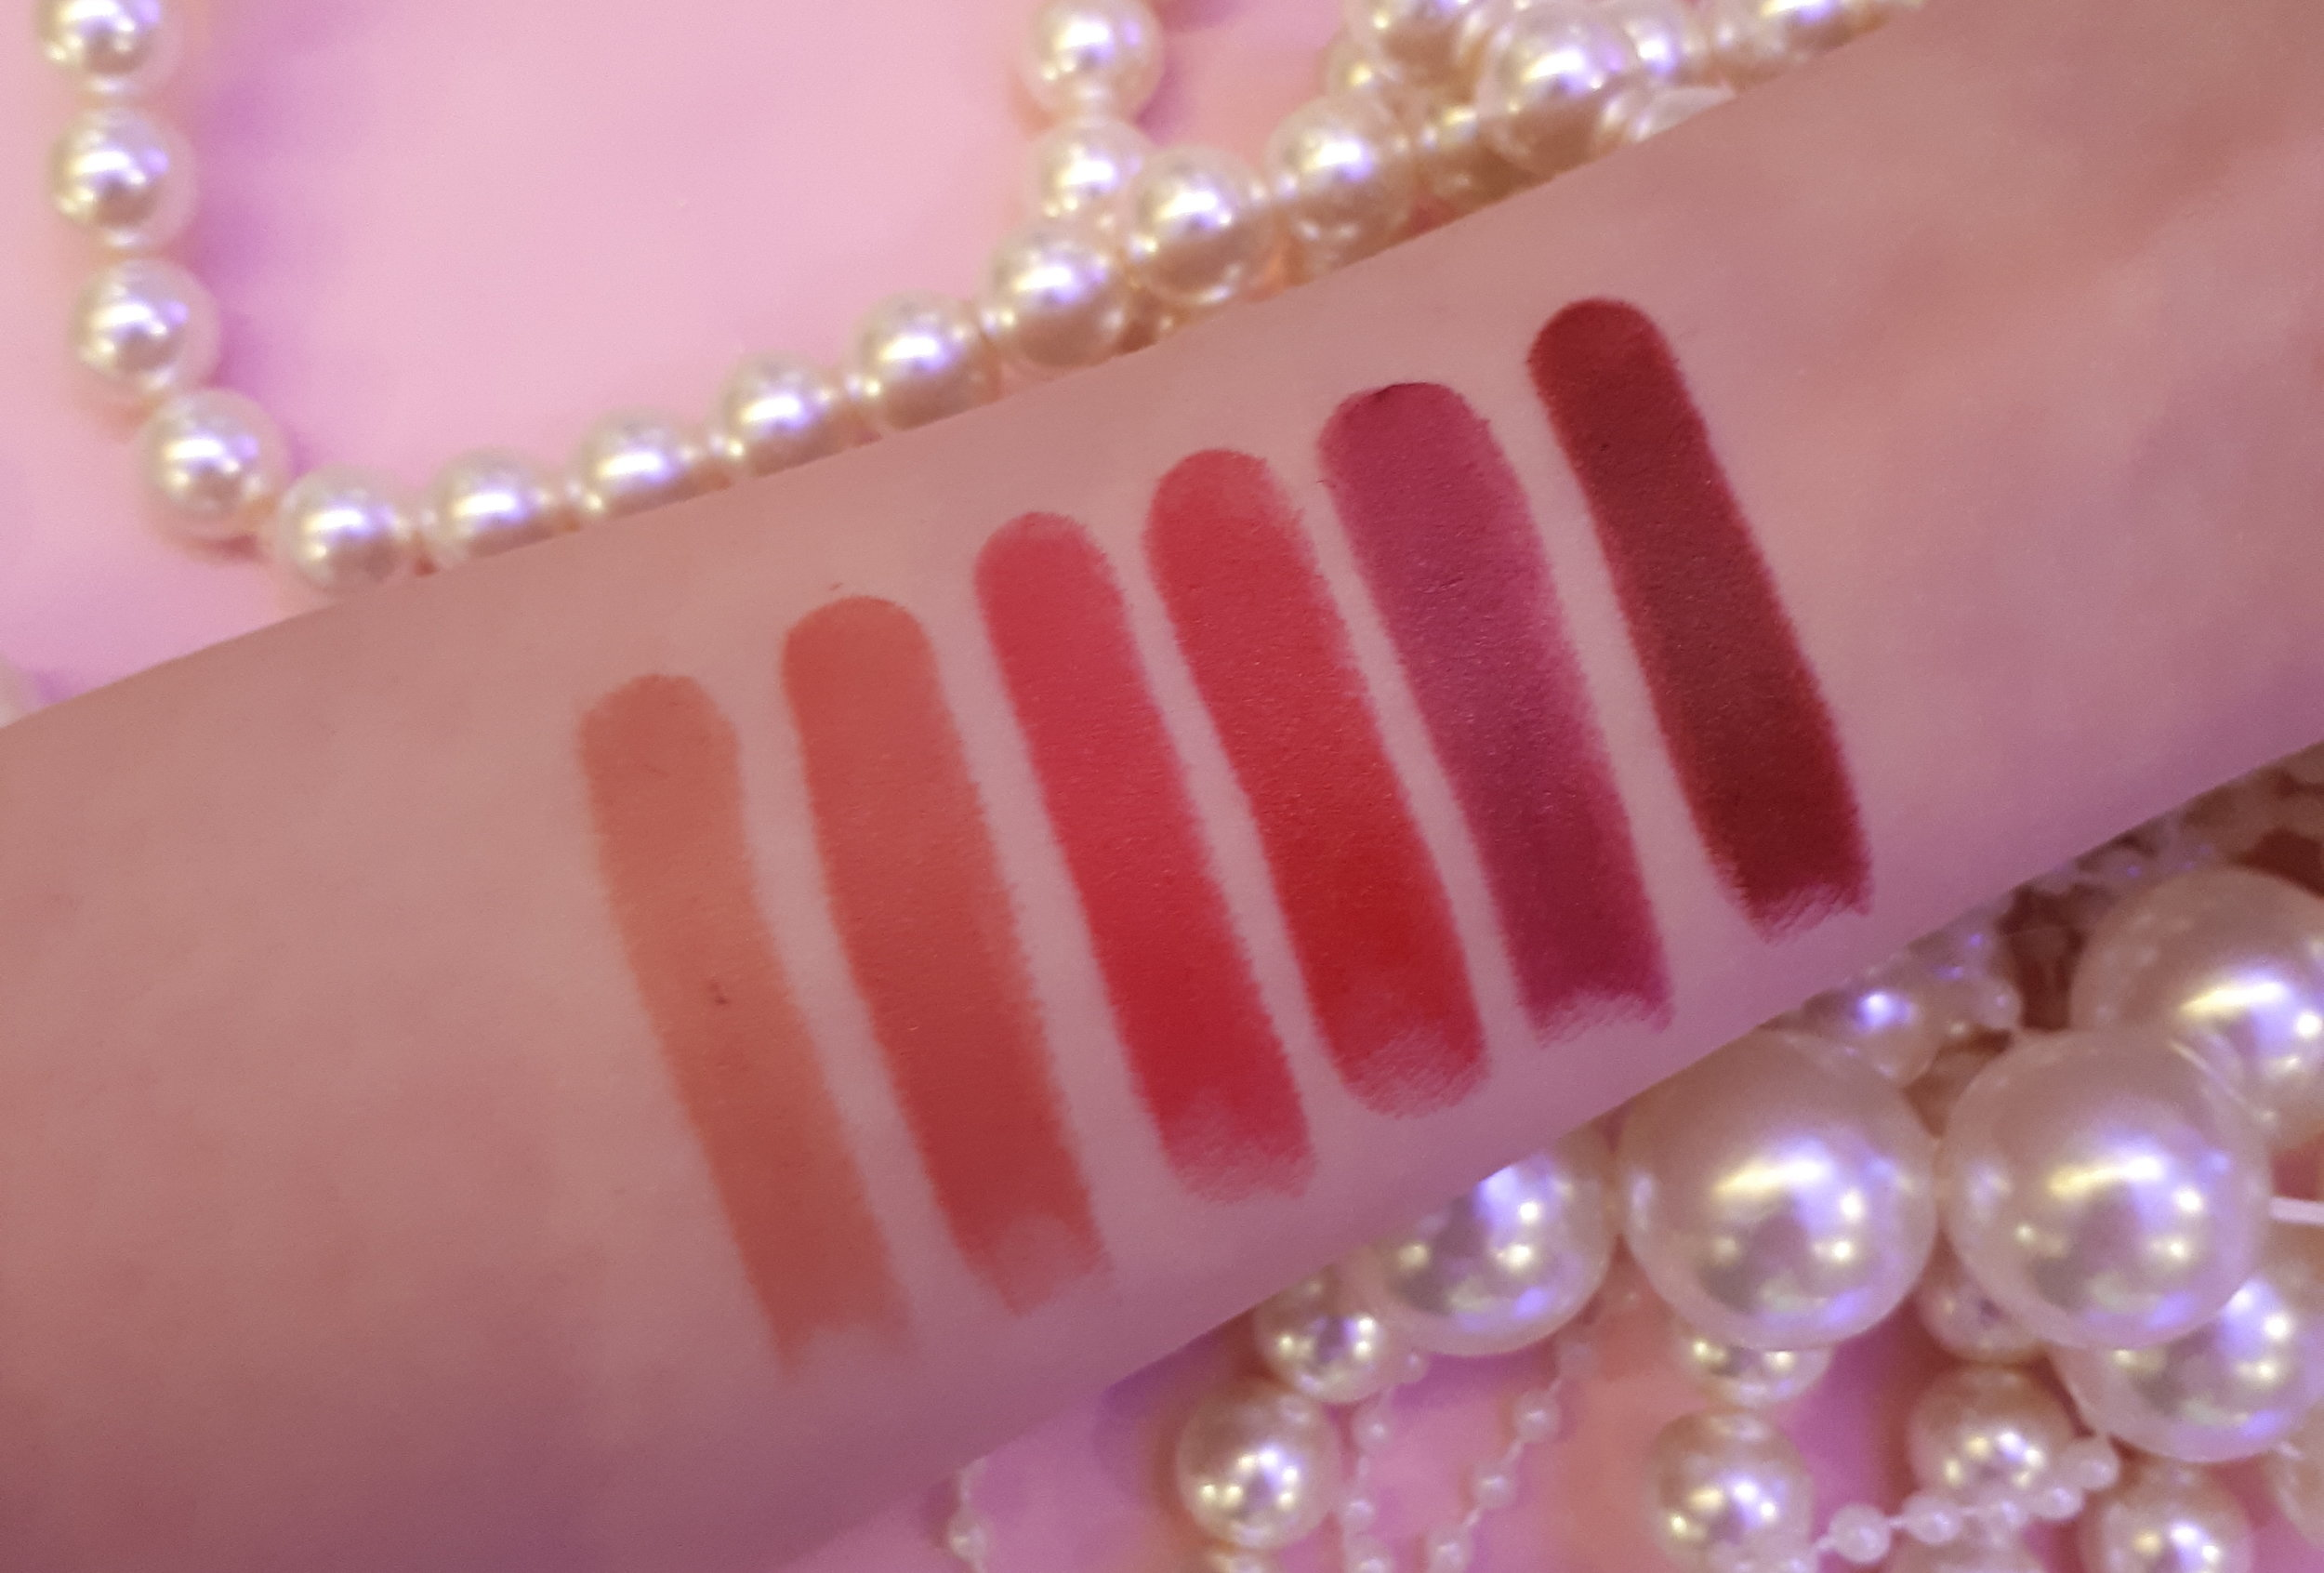 Kanebo Intense Crayon Rouge swatched: 01 Natural Beige, 02 Chic Pink, 03 Vibrant Fuschia, 04 Impact Red, 05 Sophisticated Wine, 06 Stylish Bordeaux